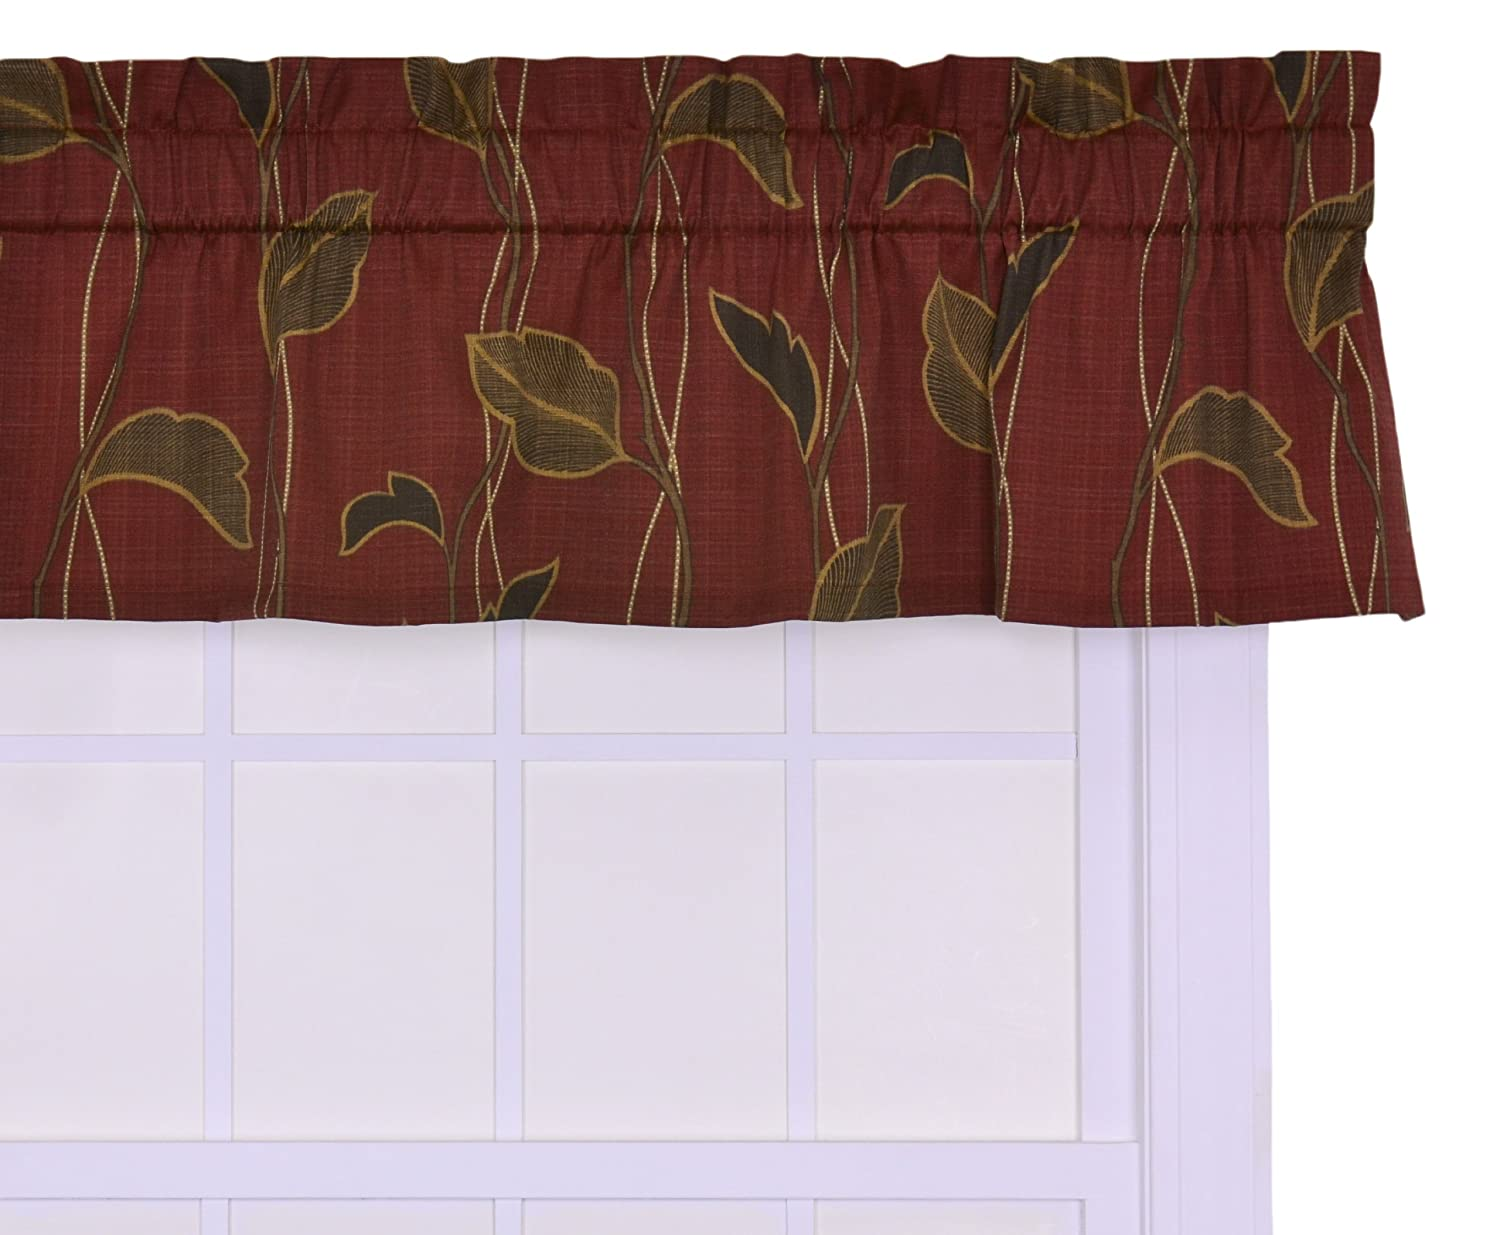 Ellis Curtain Riviera Large Scale Leaf and Vine Tailored Valance Window Curtain, Cinnamon